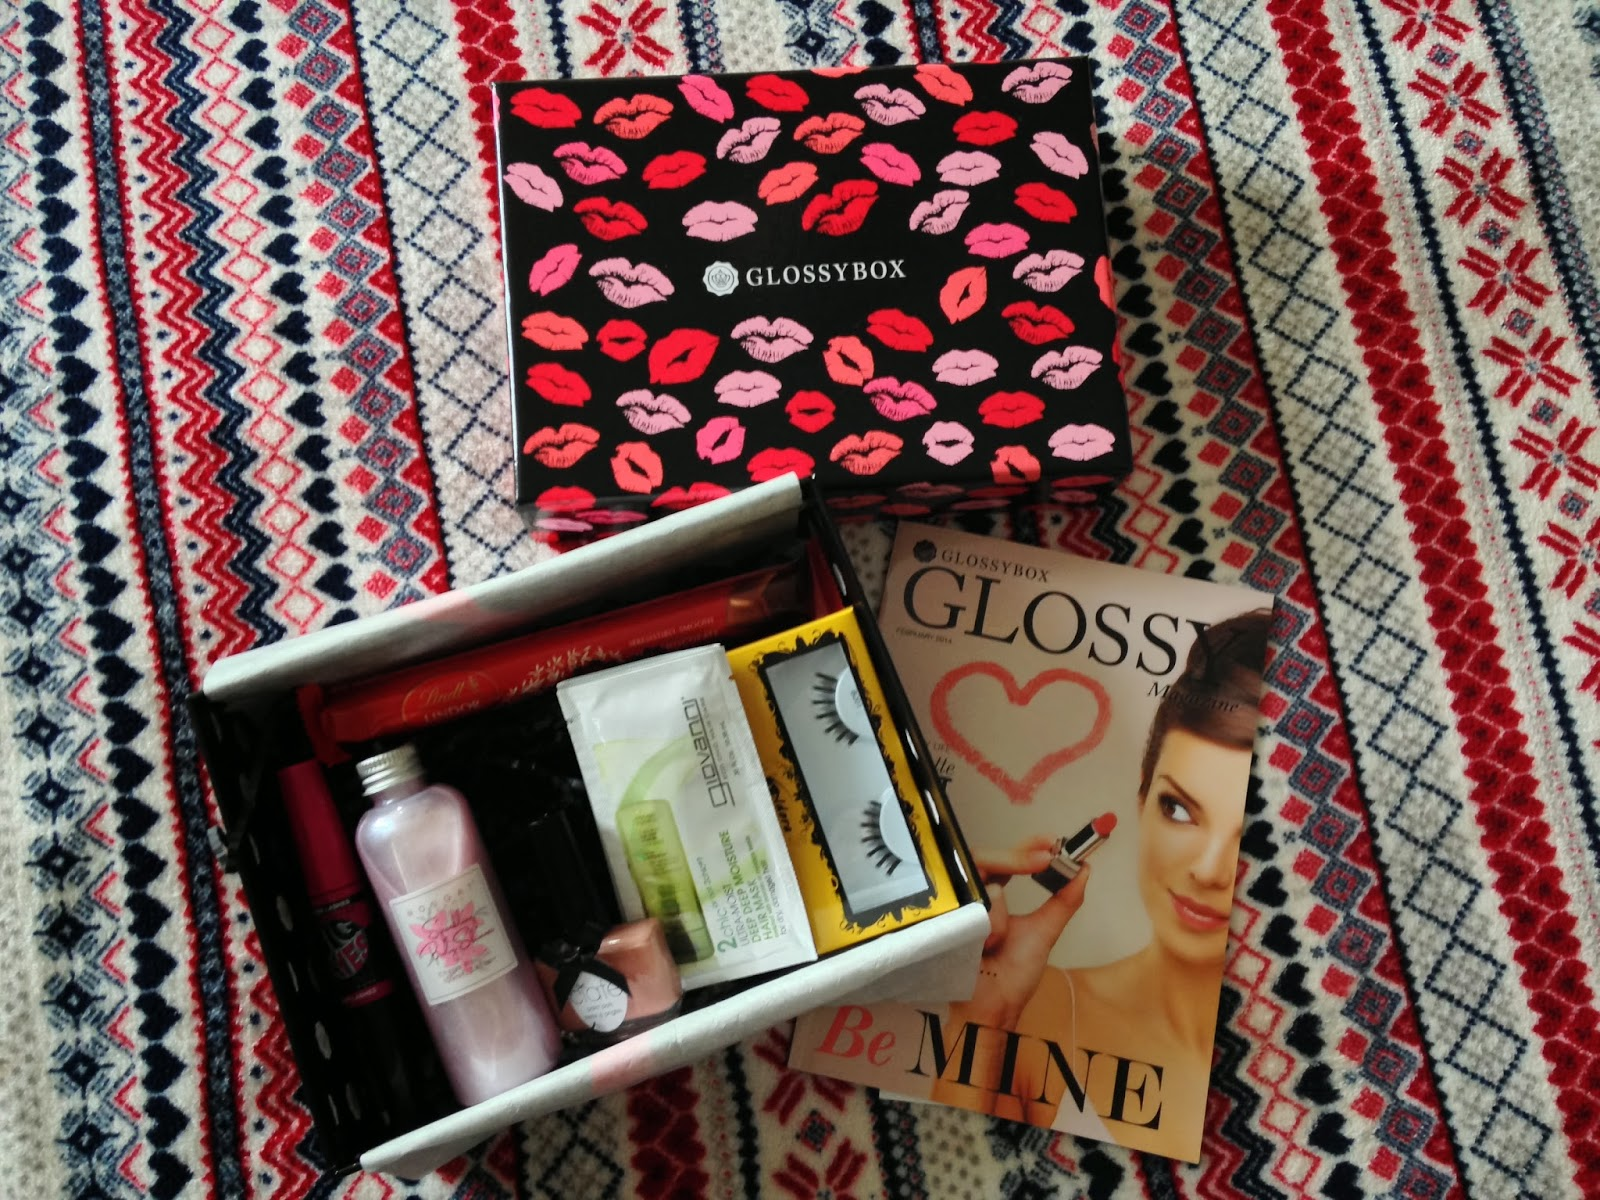 Glossybox contents Febraury 2014